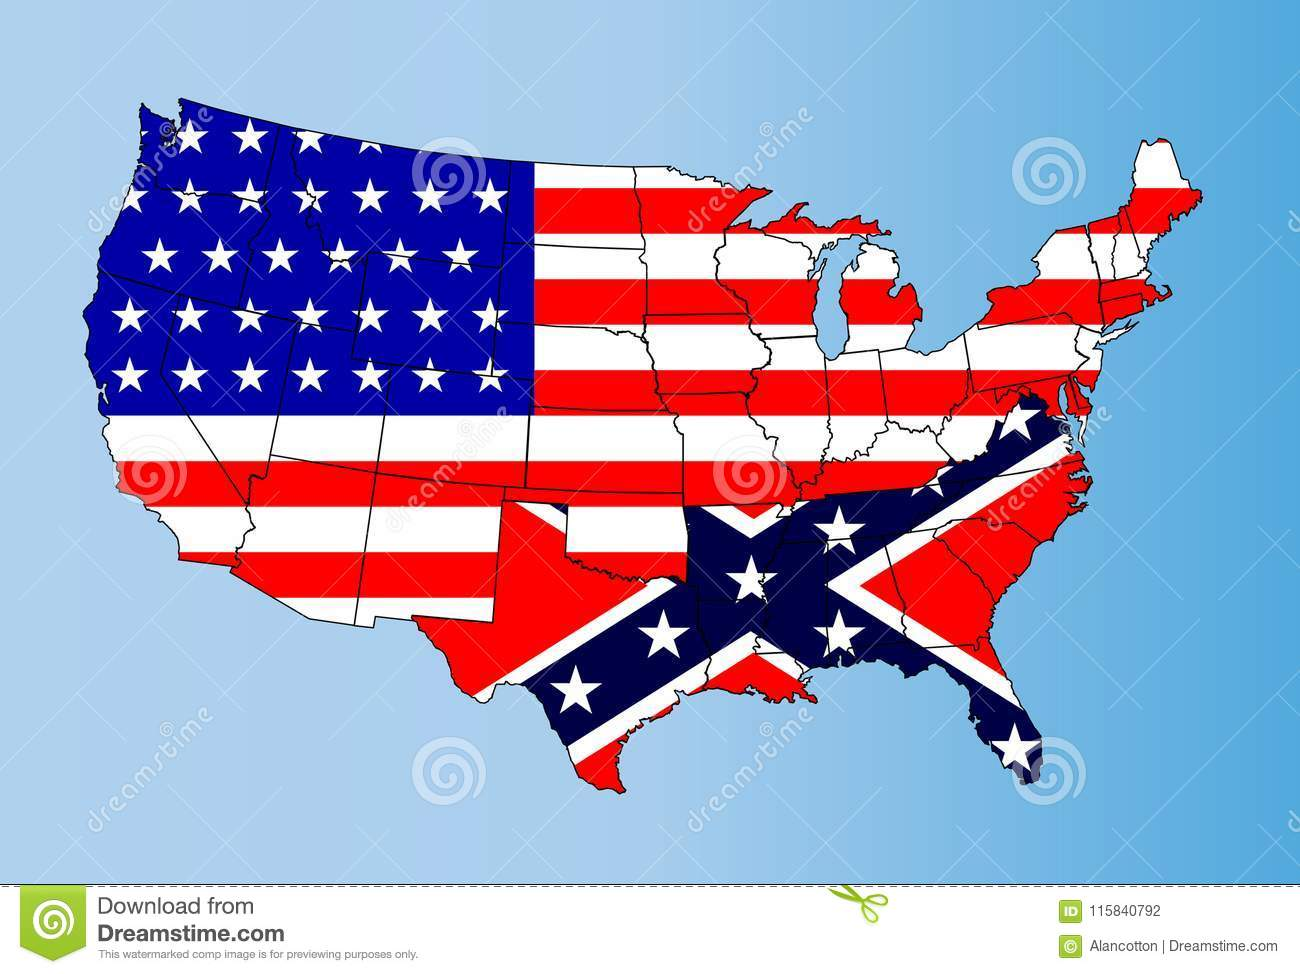 Confederate And Union States Flag Map Of America Stock ... on confederate states of america, fort sumter, tornado weather map, red state blue state map, ottoman empire map, gettysburg address, william tecumseh sherman, second battle of bull run, union of america, american civil war, union civil war, battle of chancellorsville, union army, border states, usa border map, mo state map, indian tribe map, assassination of abraham lincoln, battle of shiloh, battle of gettysburg, battle of fredericksburg, native american reservations today map, battle of appomattox courthouse, virginia state map, union state of russia and belarus, united states of america, battle of vicksburg, usa geography map, post ussr map, battle of fort sumter, union strength by state, stonewall jackson, union territories remaining on, robert e. lee, us demographic map, saarc countries map, us territories map, ancient india map, mo river map,